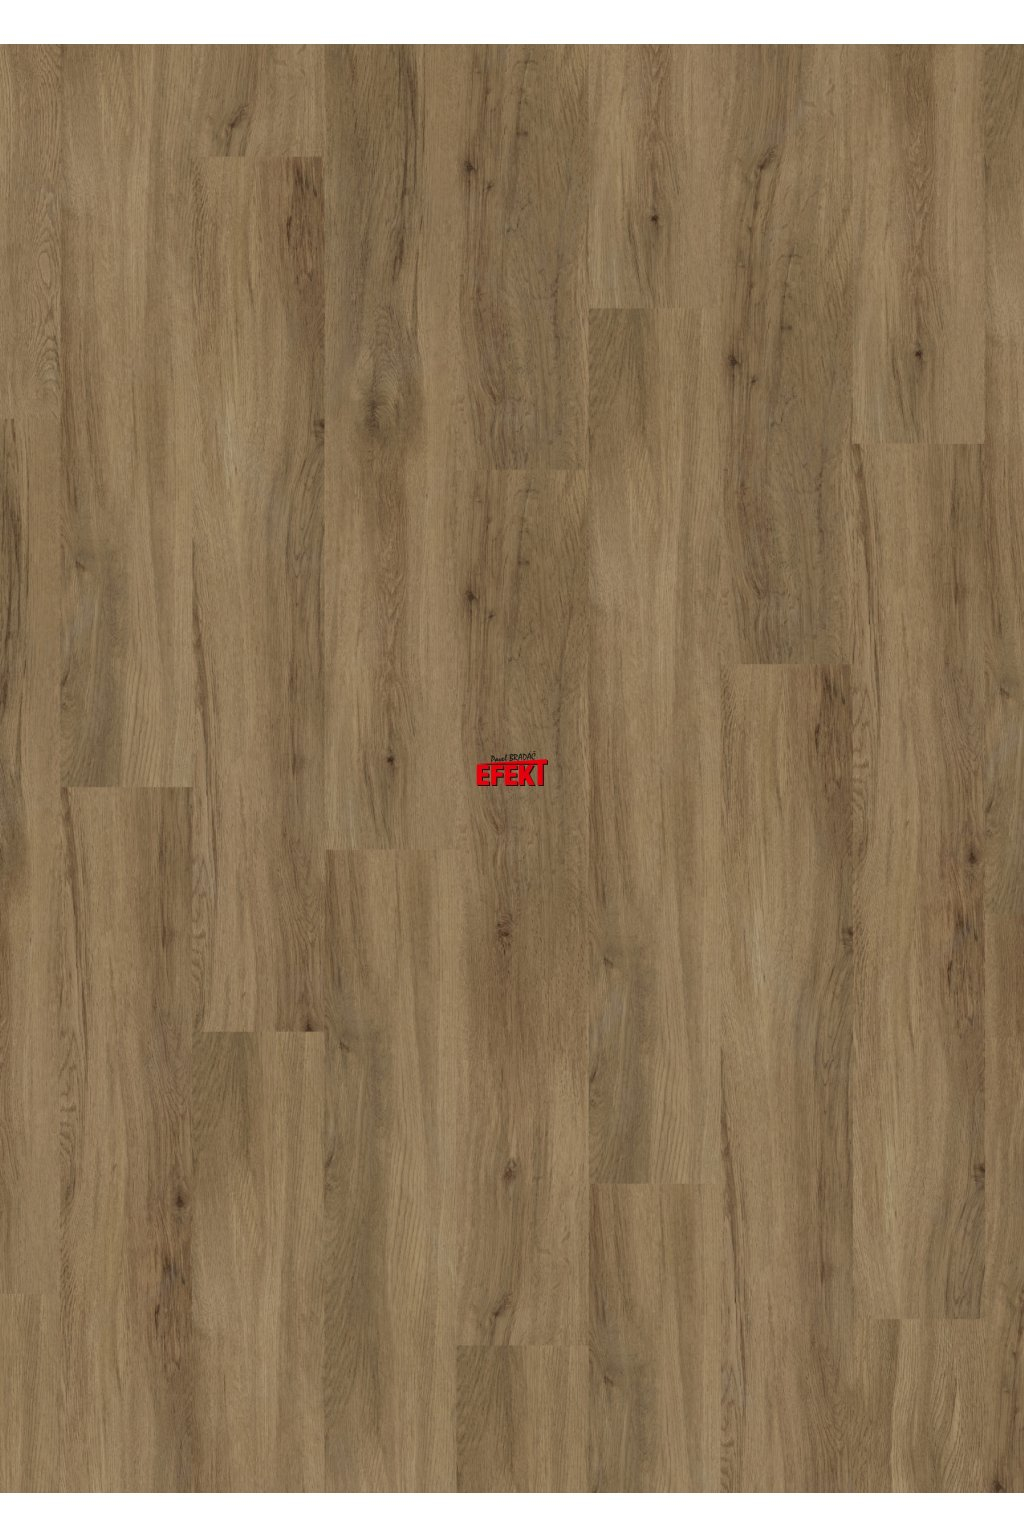 Gerflor Rigid Lock 30 Puerto